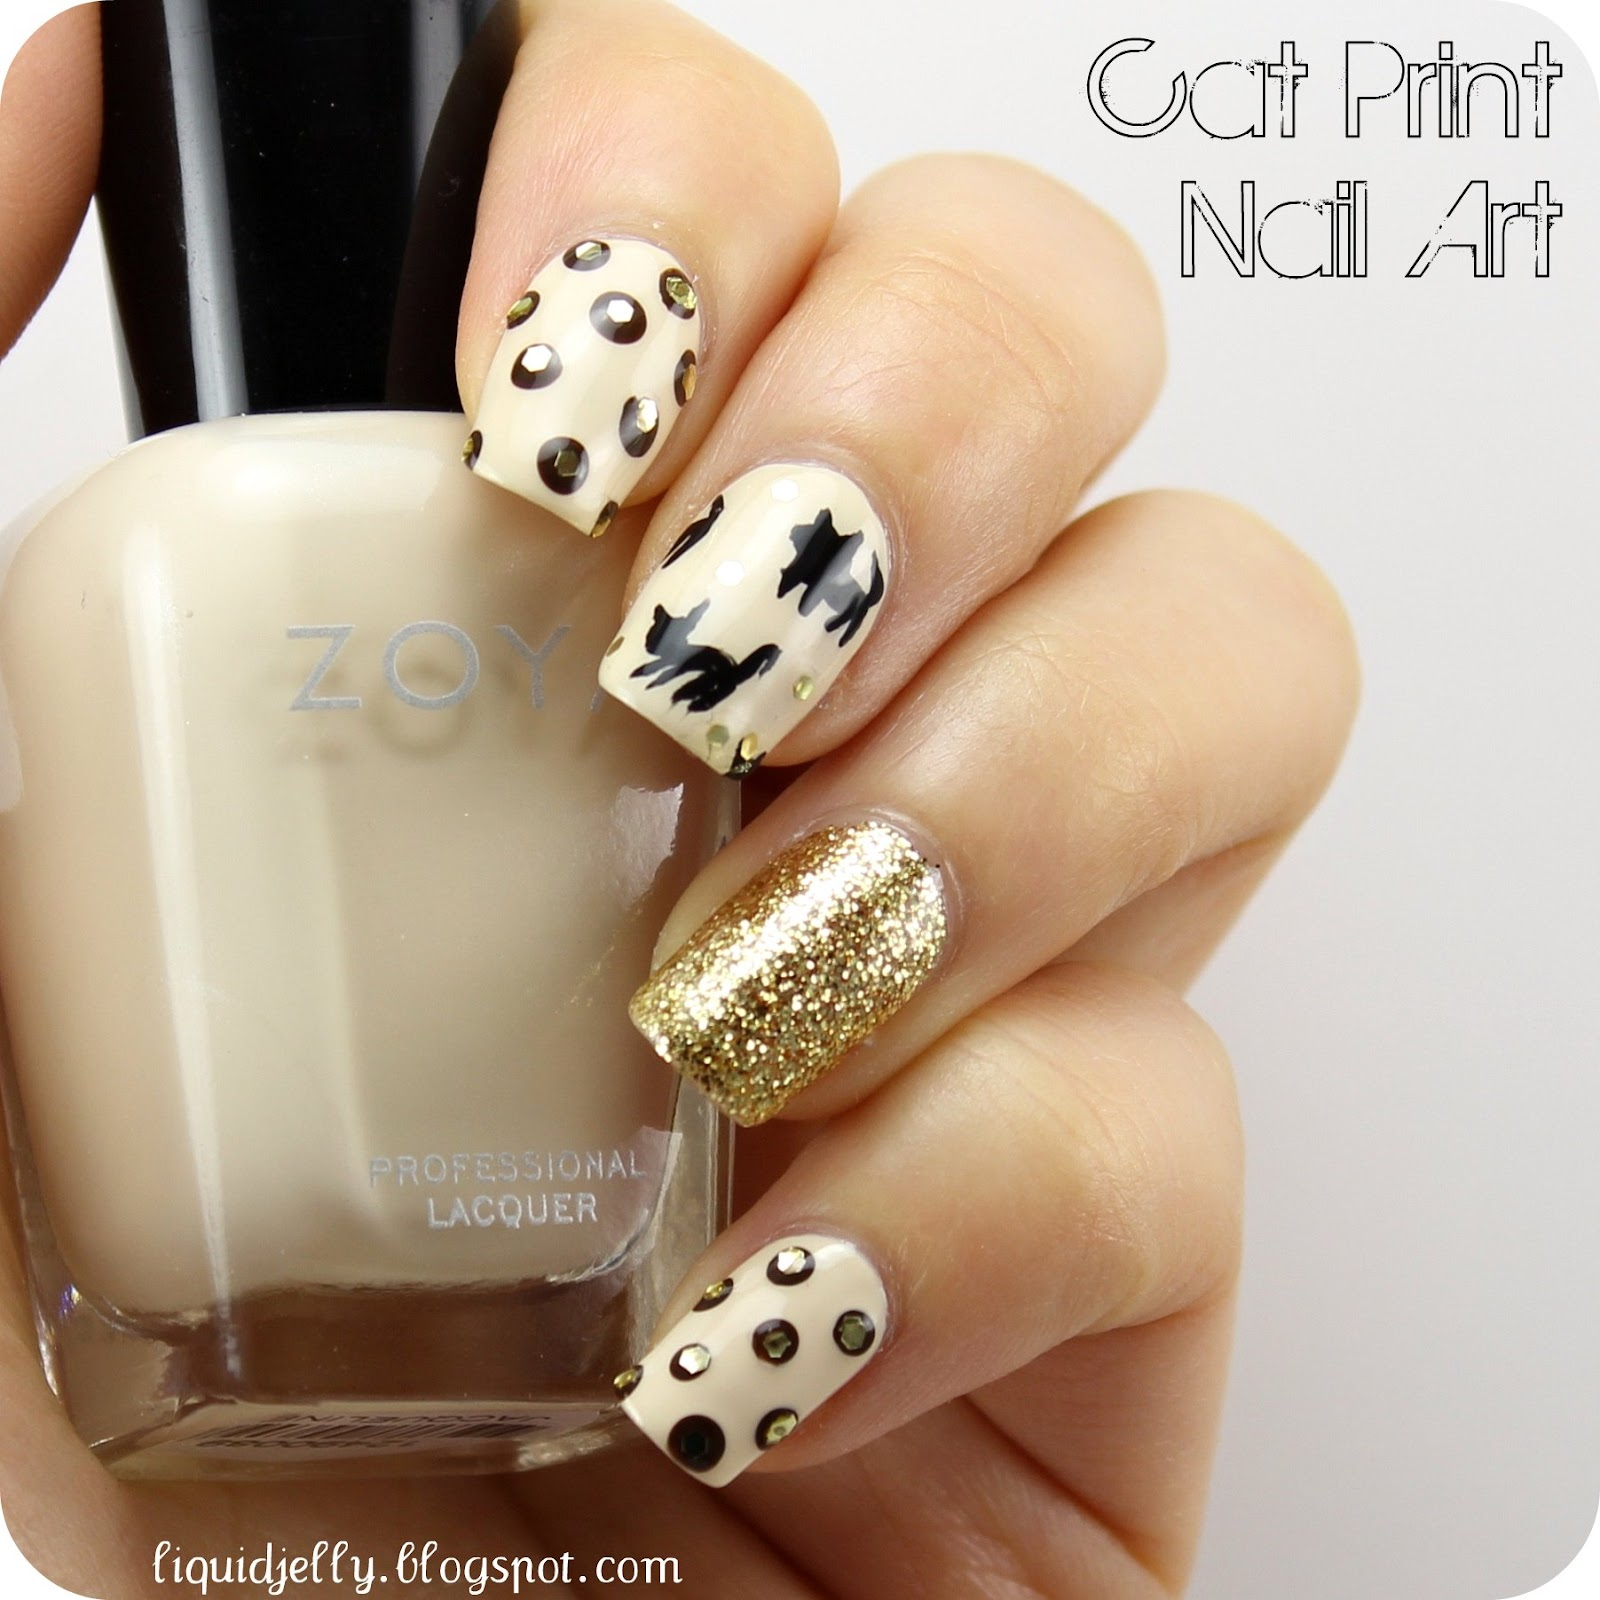 Liquid Jelly: Cat Print Nail Art